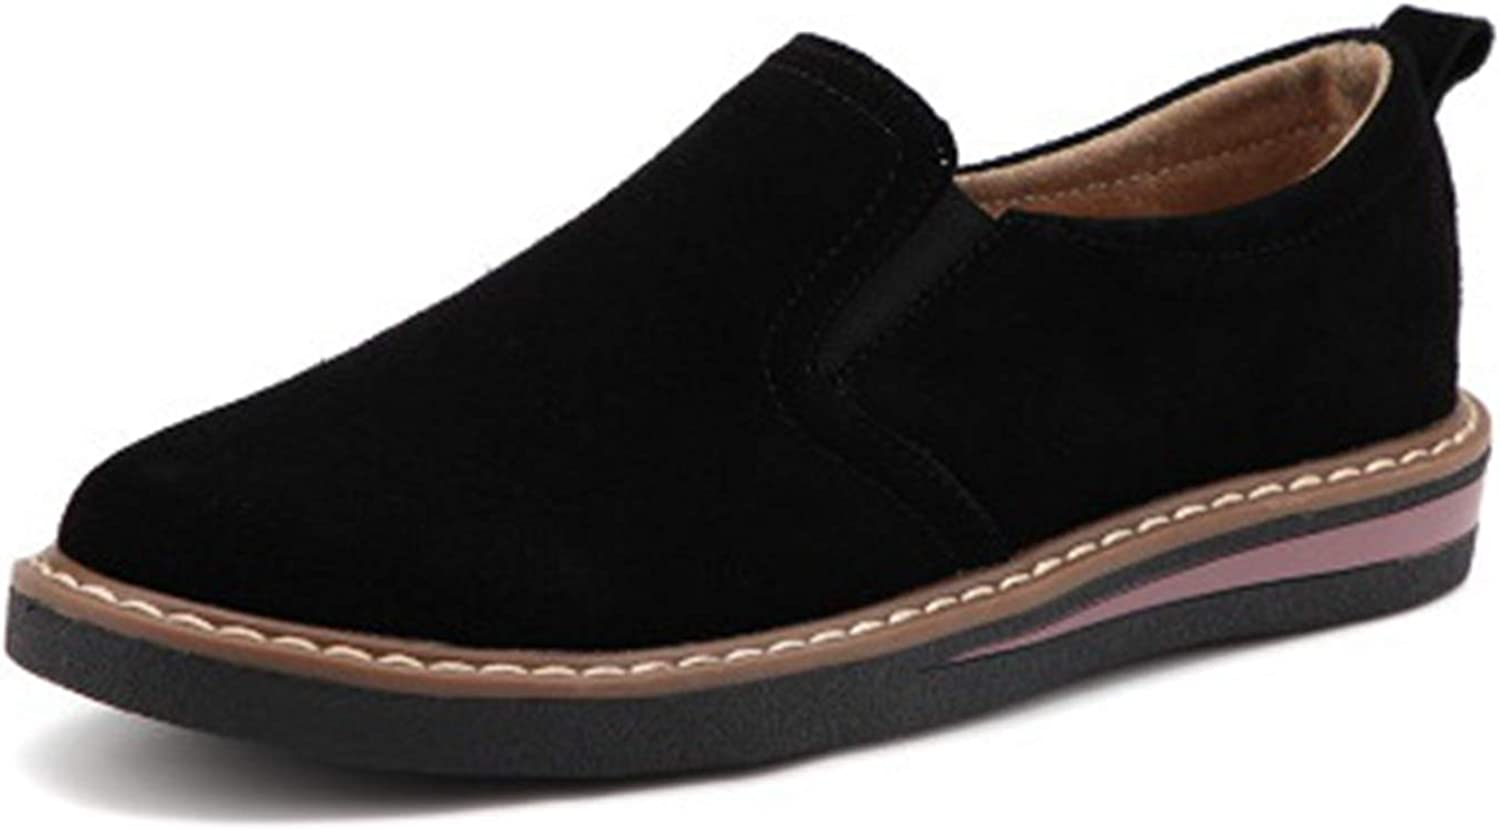 Greuses 2019 Spring Women Flats Sneakers shoes Women Slip On Flat Loafers Suede Leather shoes Handmade Boat shoes Black Oxfords